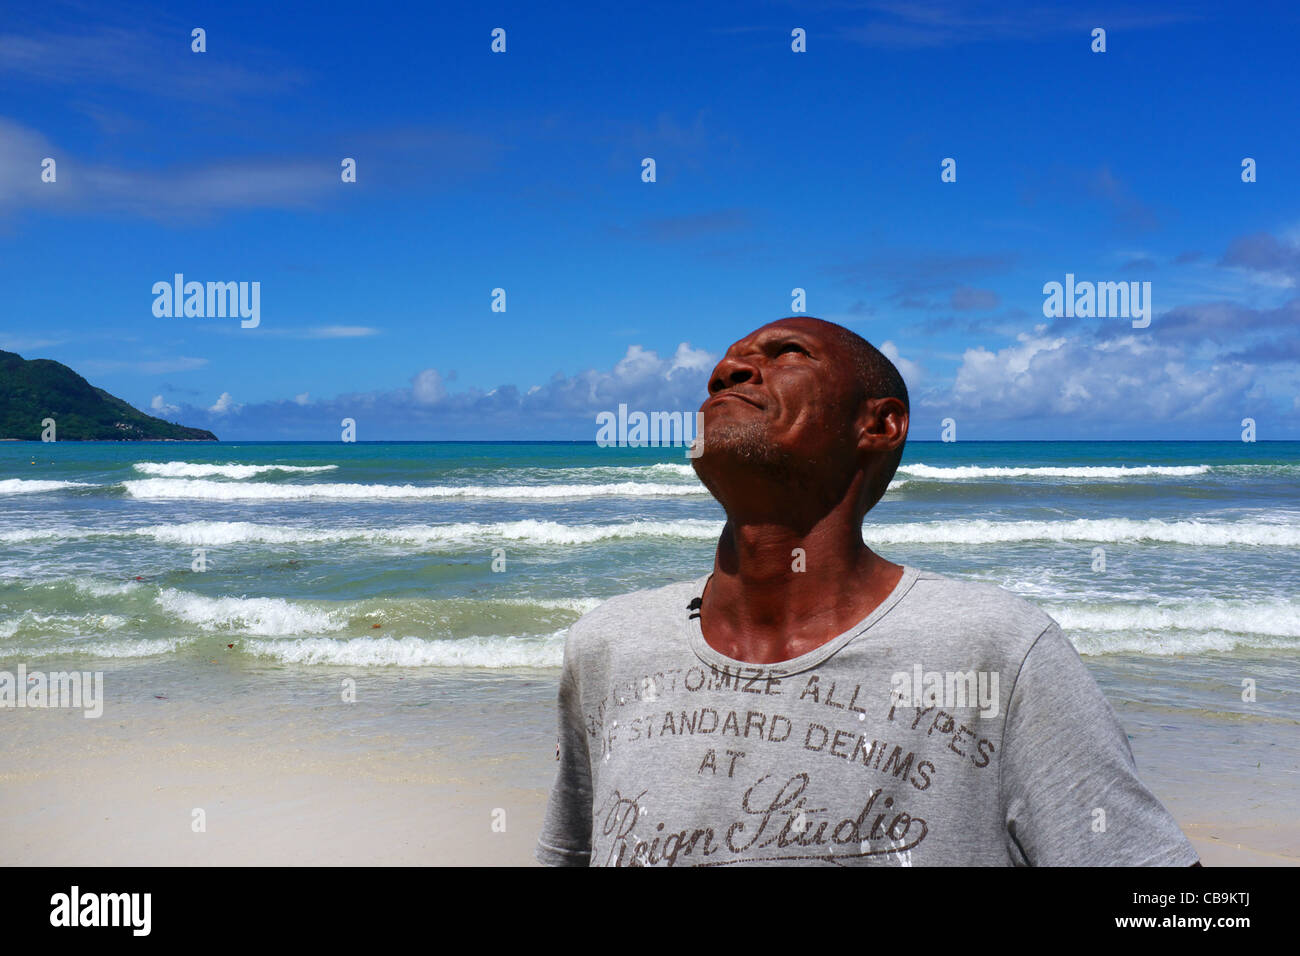 Local fisherman in Seychelles, thanking God for the good catch he had, and asking for similar in the future - Stock Image